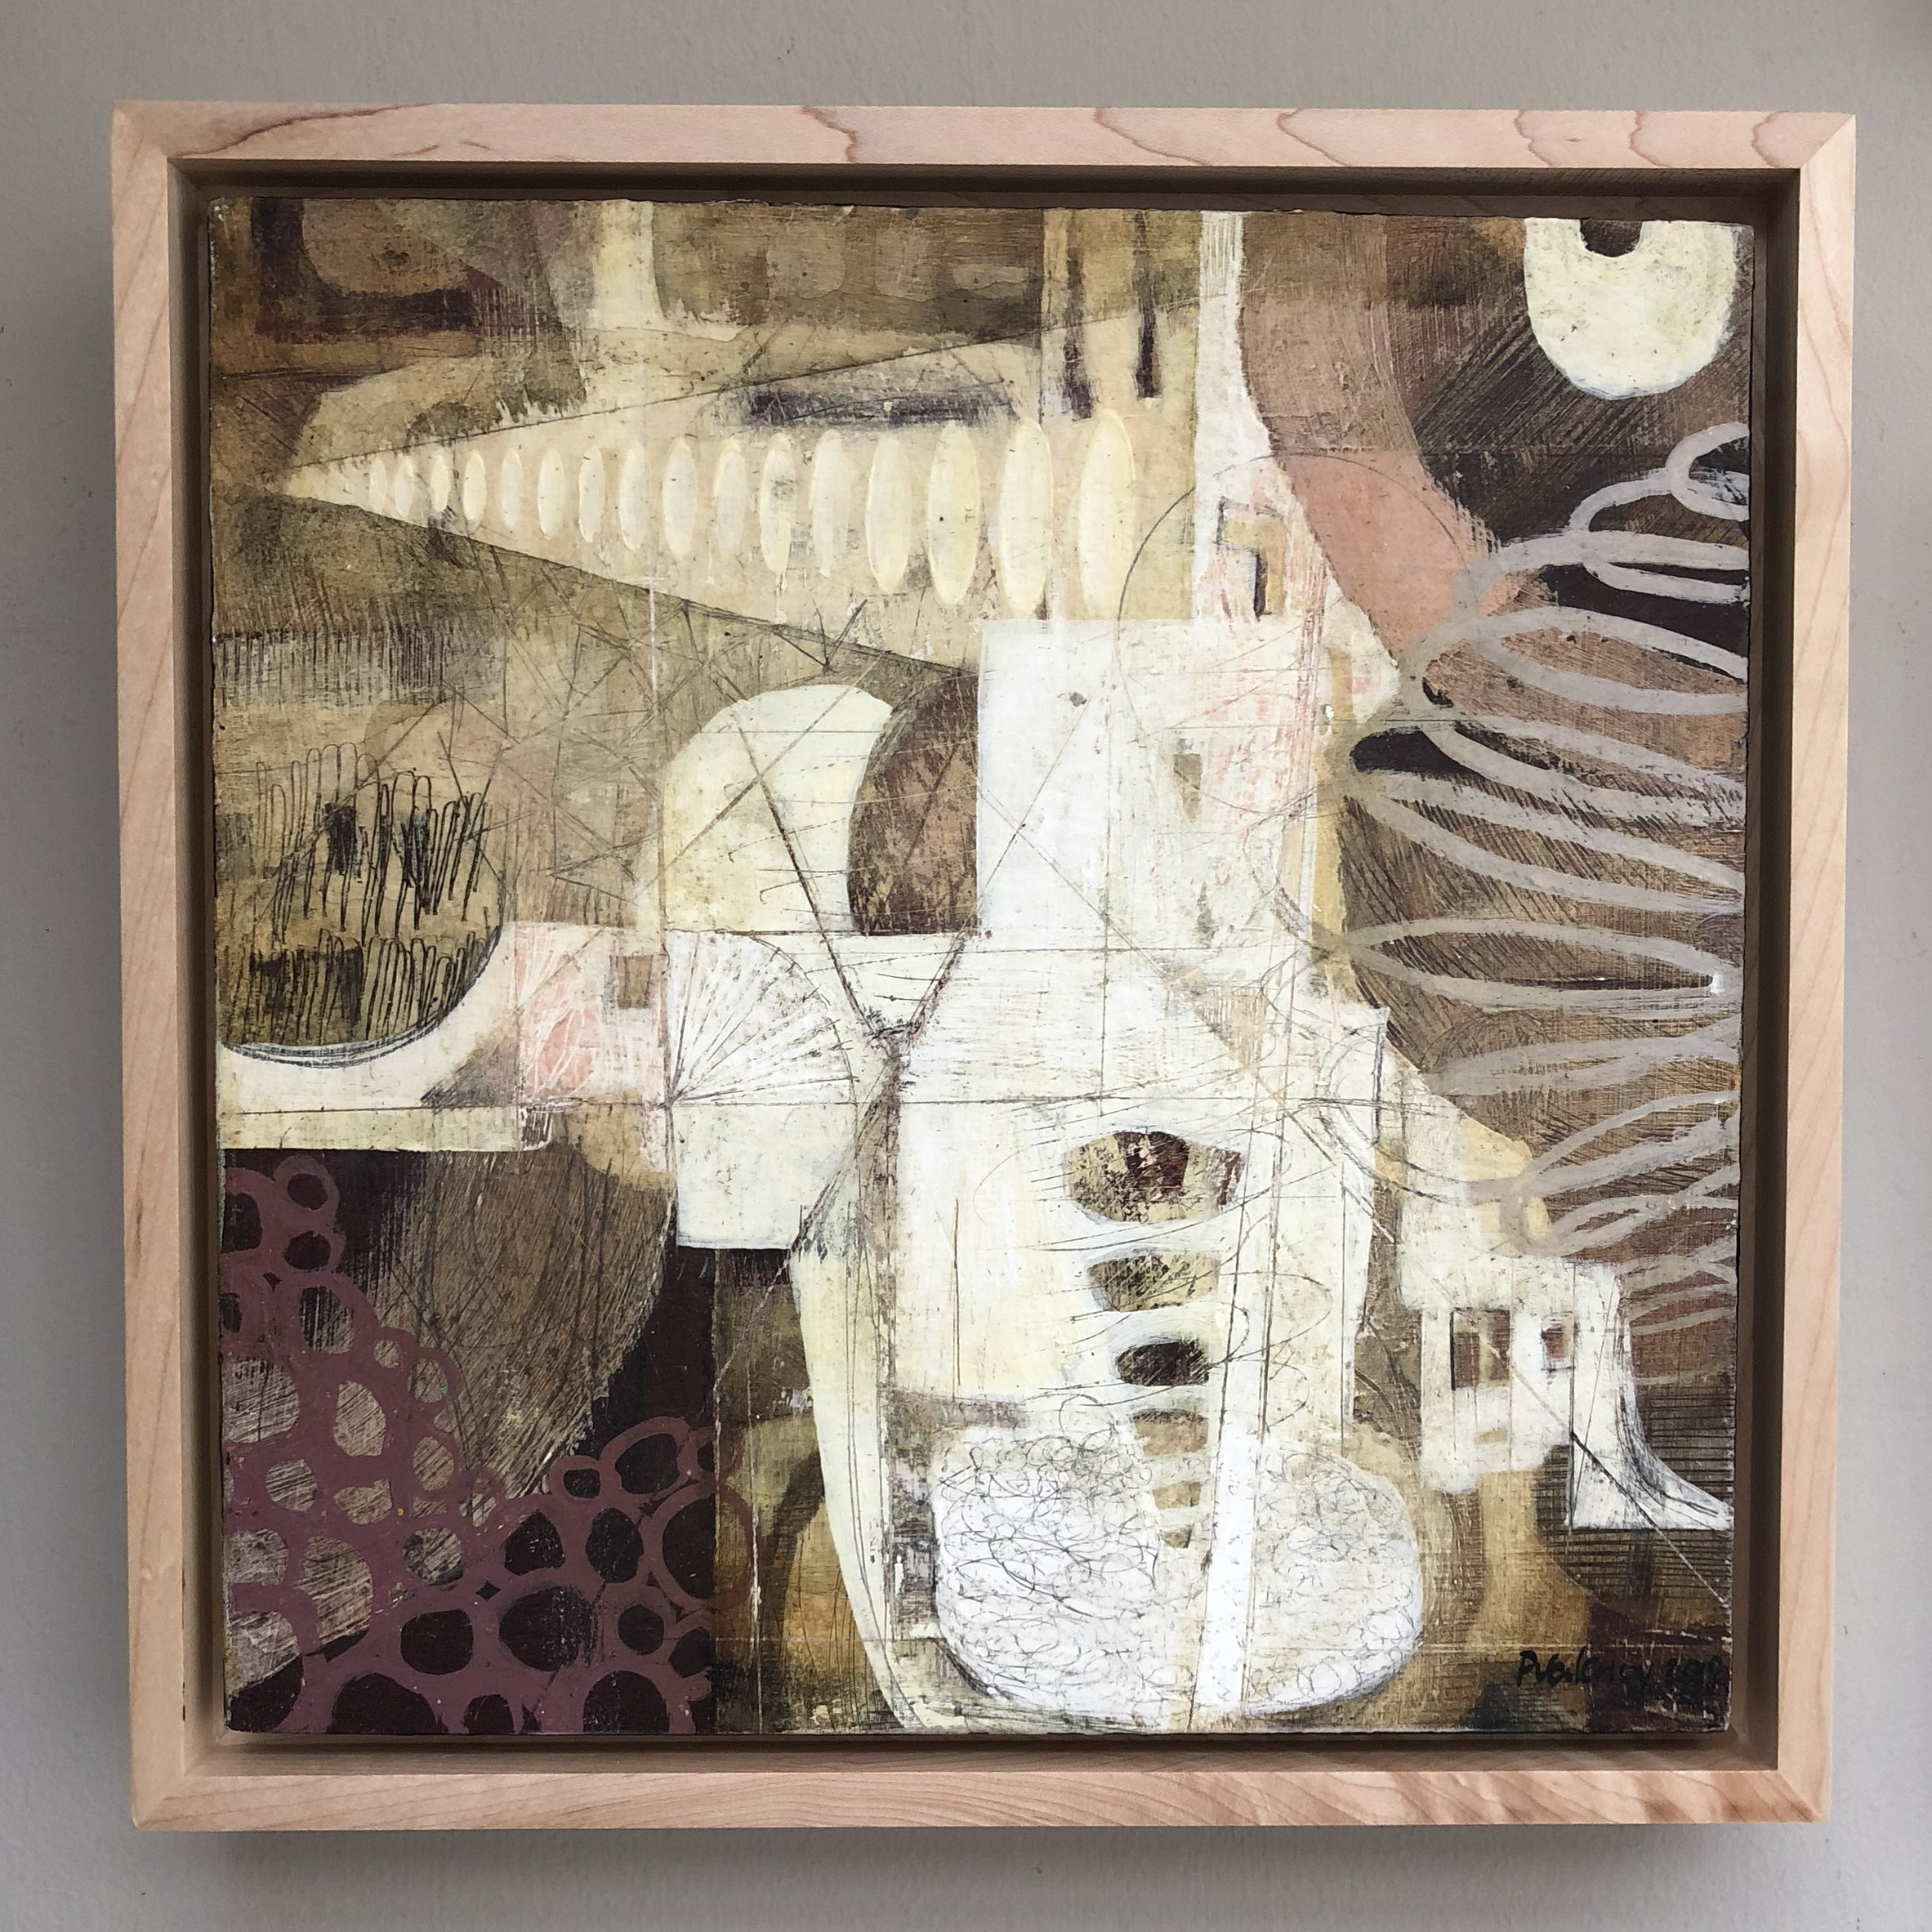 """Imaginary Space   Mixed-media painting on Panel / Board / MDF  by  Paula Valenzuela   Size: 14 x 14""""   $550.00"""